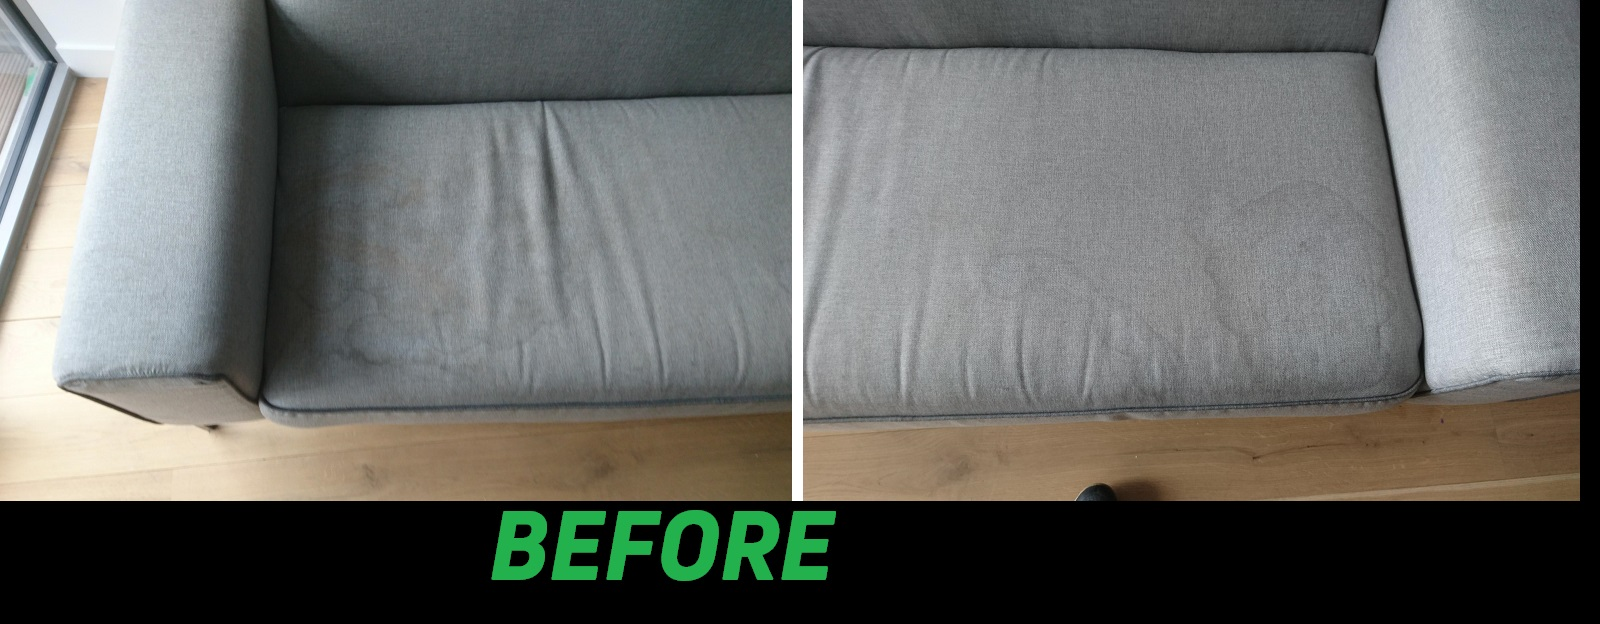 How it looks carpet cleaning before